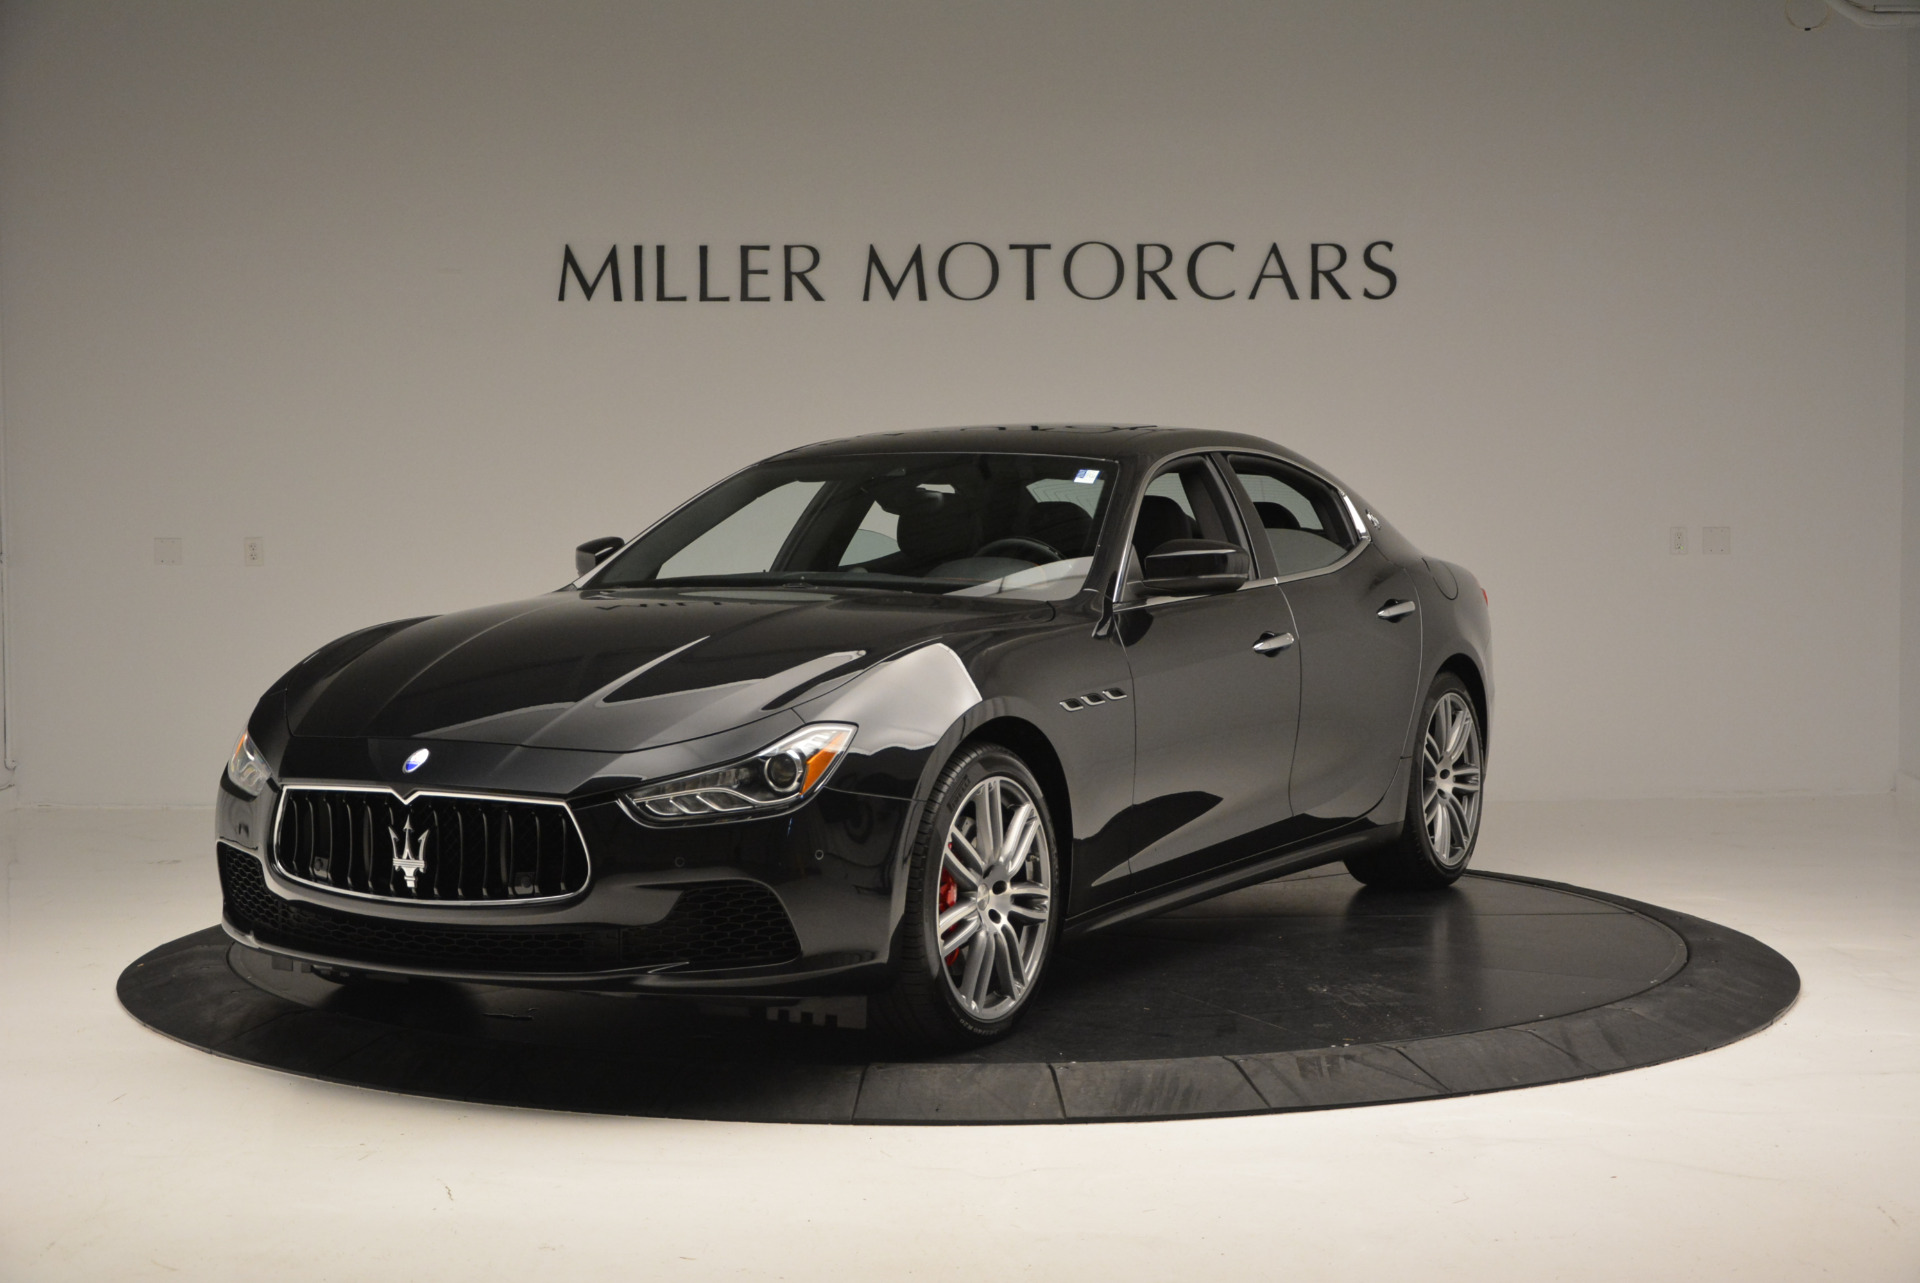 New 2017 Maserati Ghibli S Q4 For Sale In Westport, CT 575_main